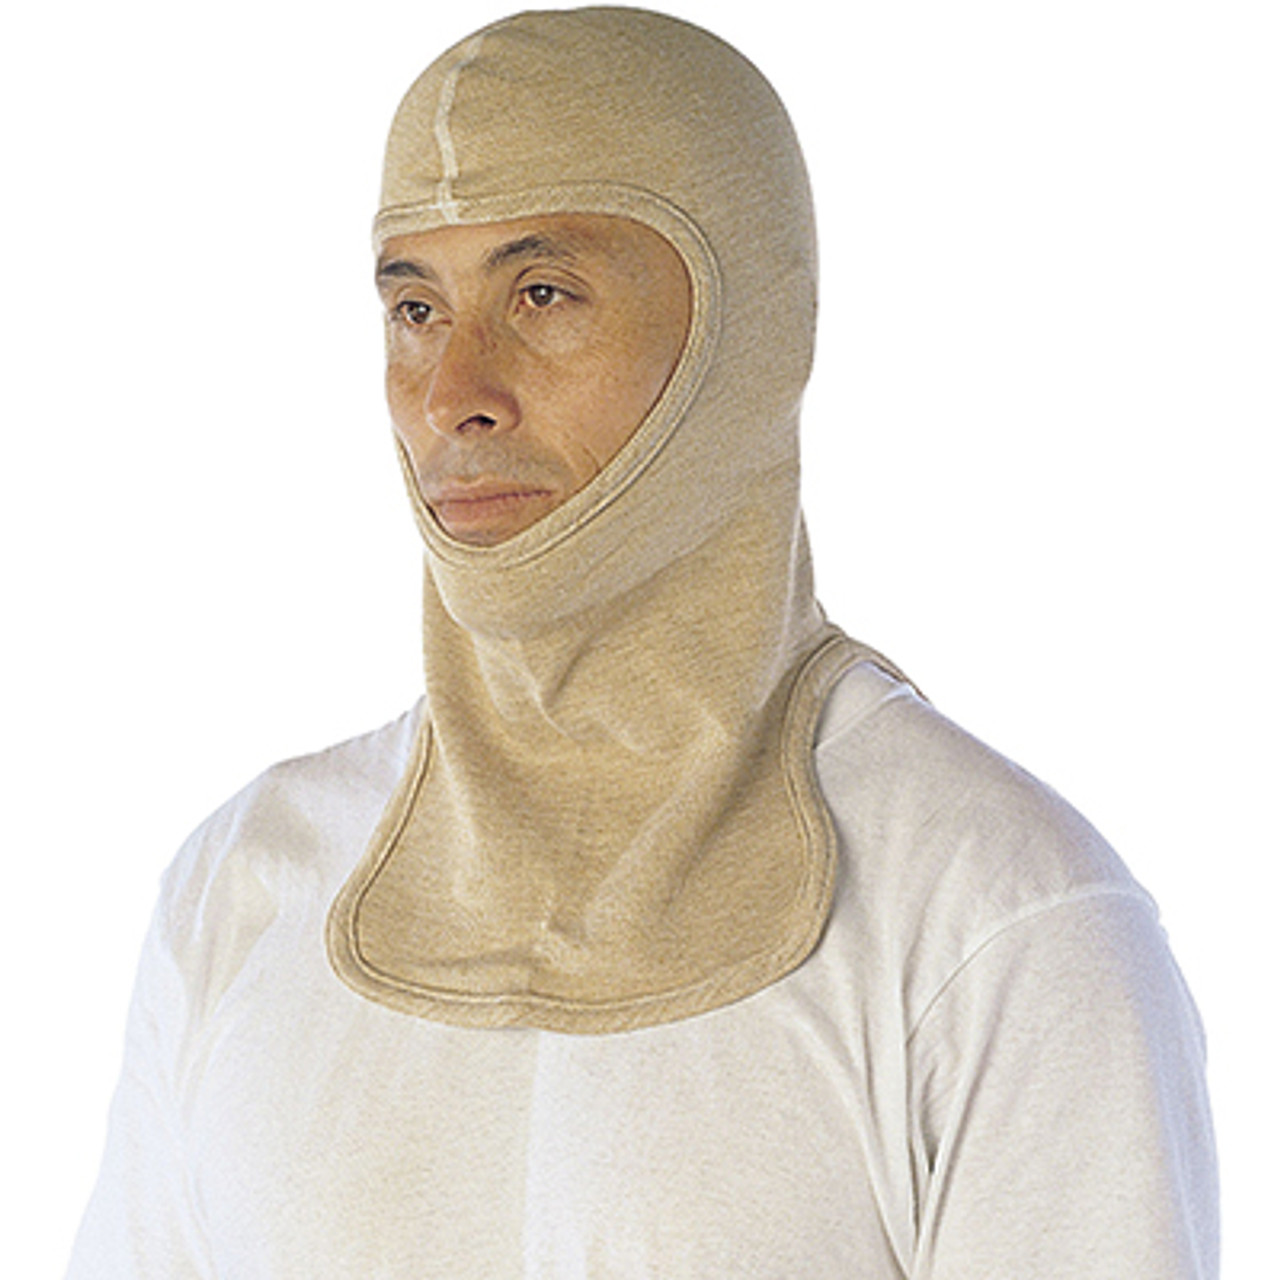 PBI Knit Balaclava with Front and Back Drapes